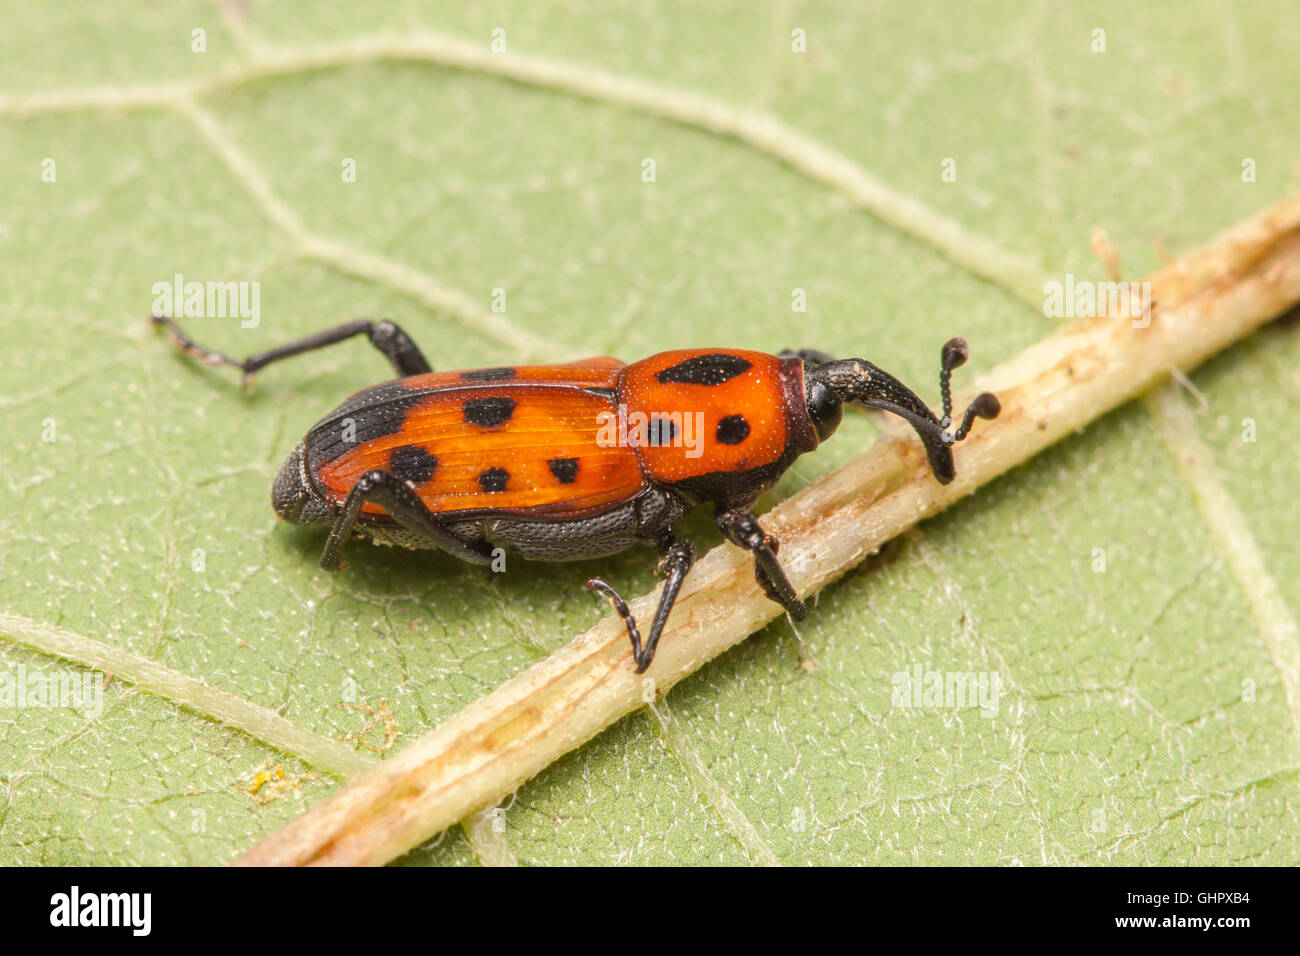 A Cocklebur Weevil (Rhodobaenus quinquepunctatus) on a leaf. - Stock Image